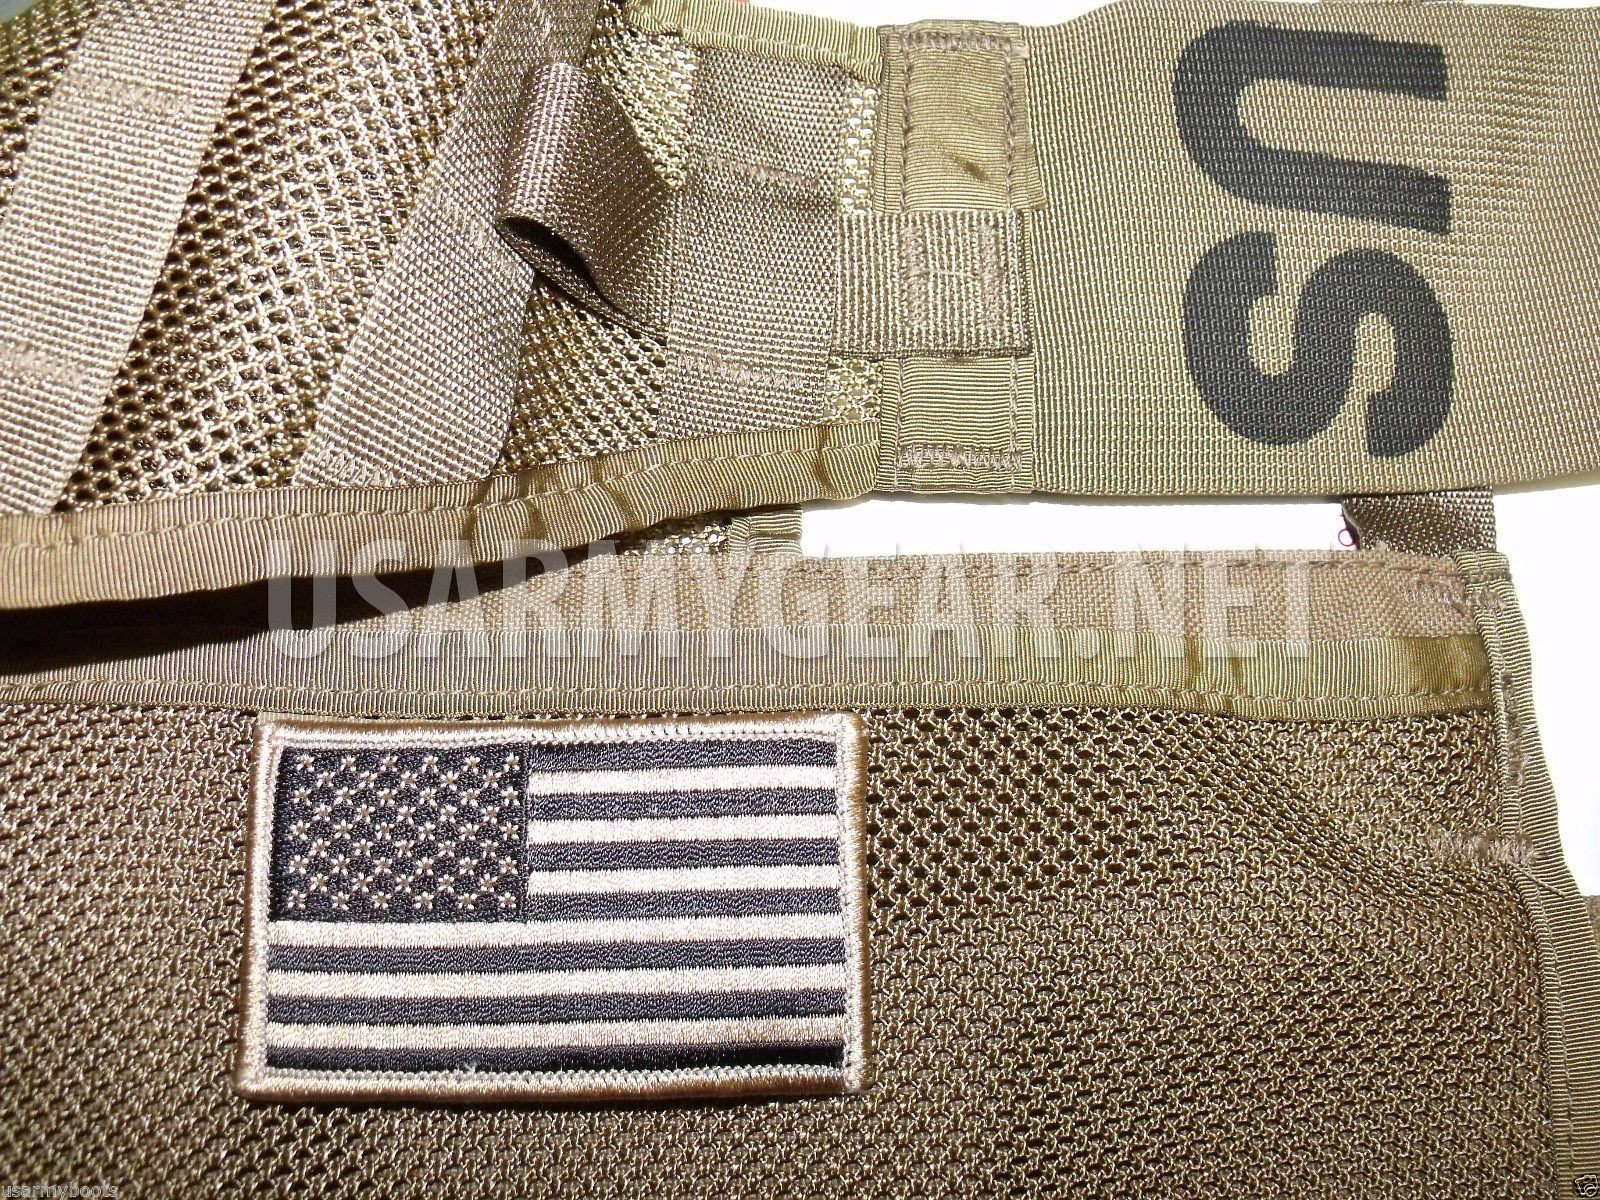 New Coyote US Army American Flag Military Uniform Velcro Patch Standard